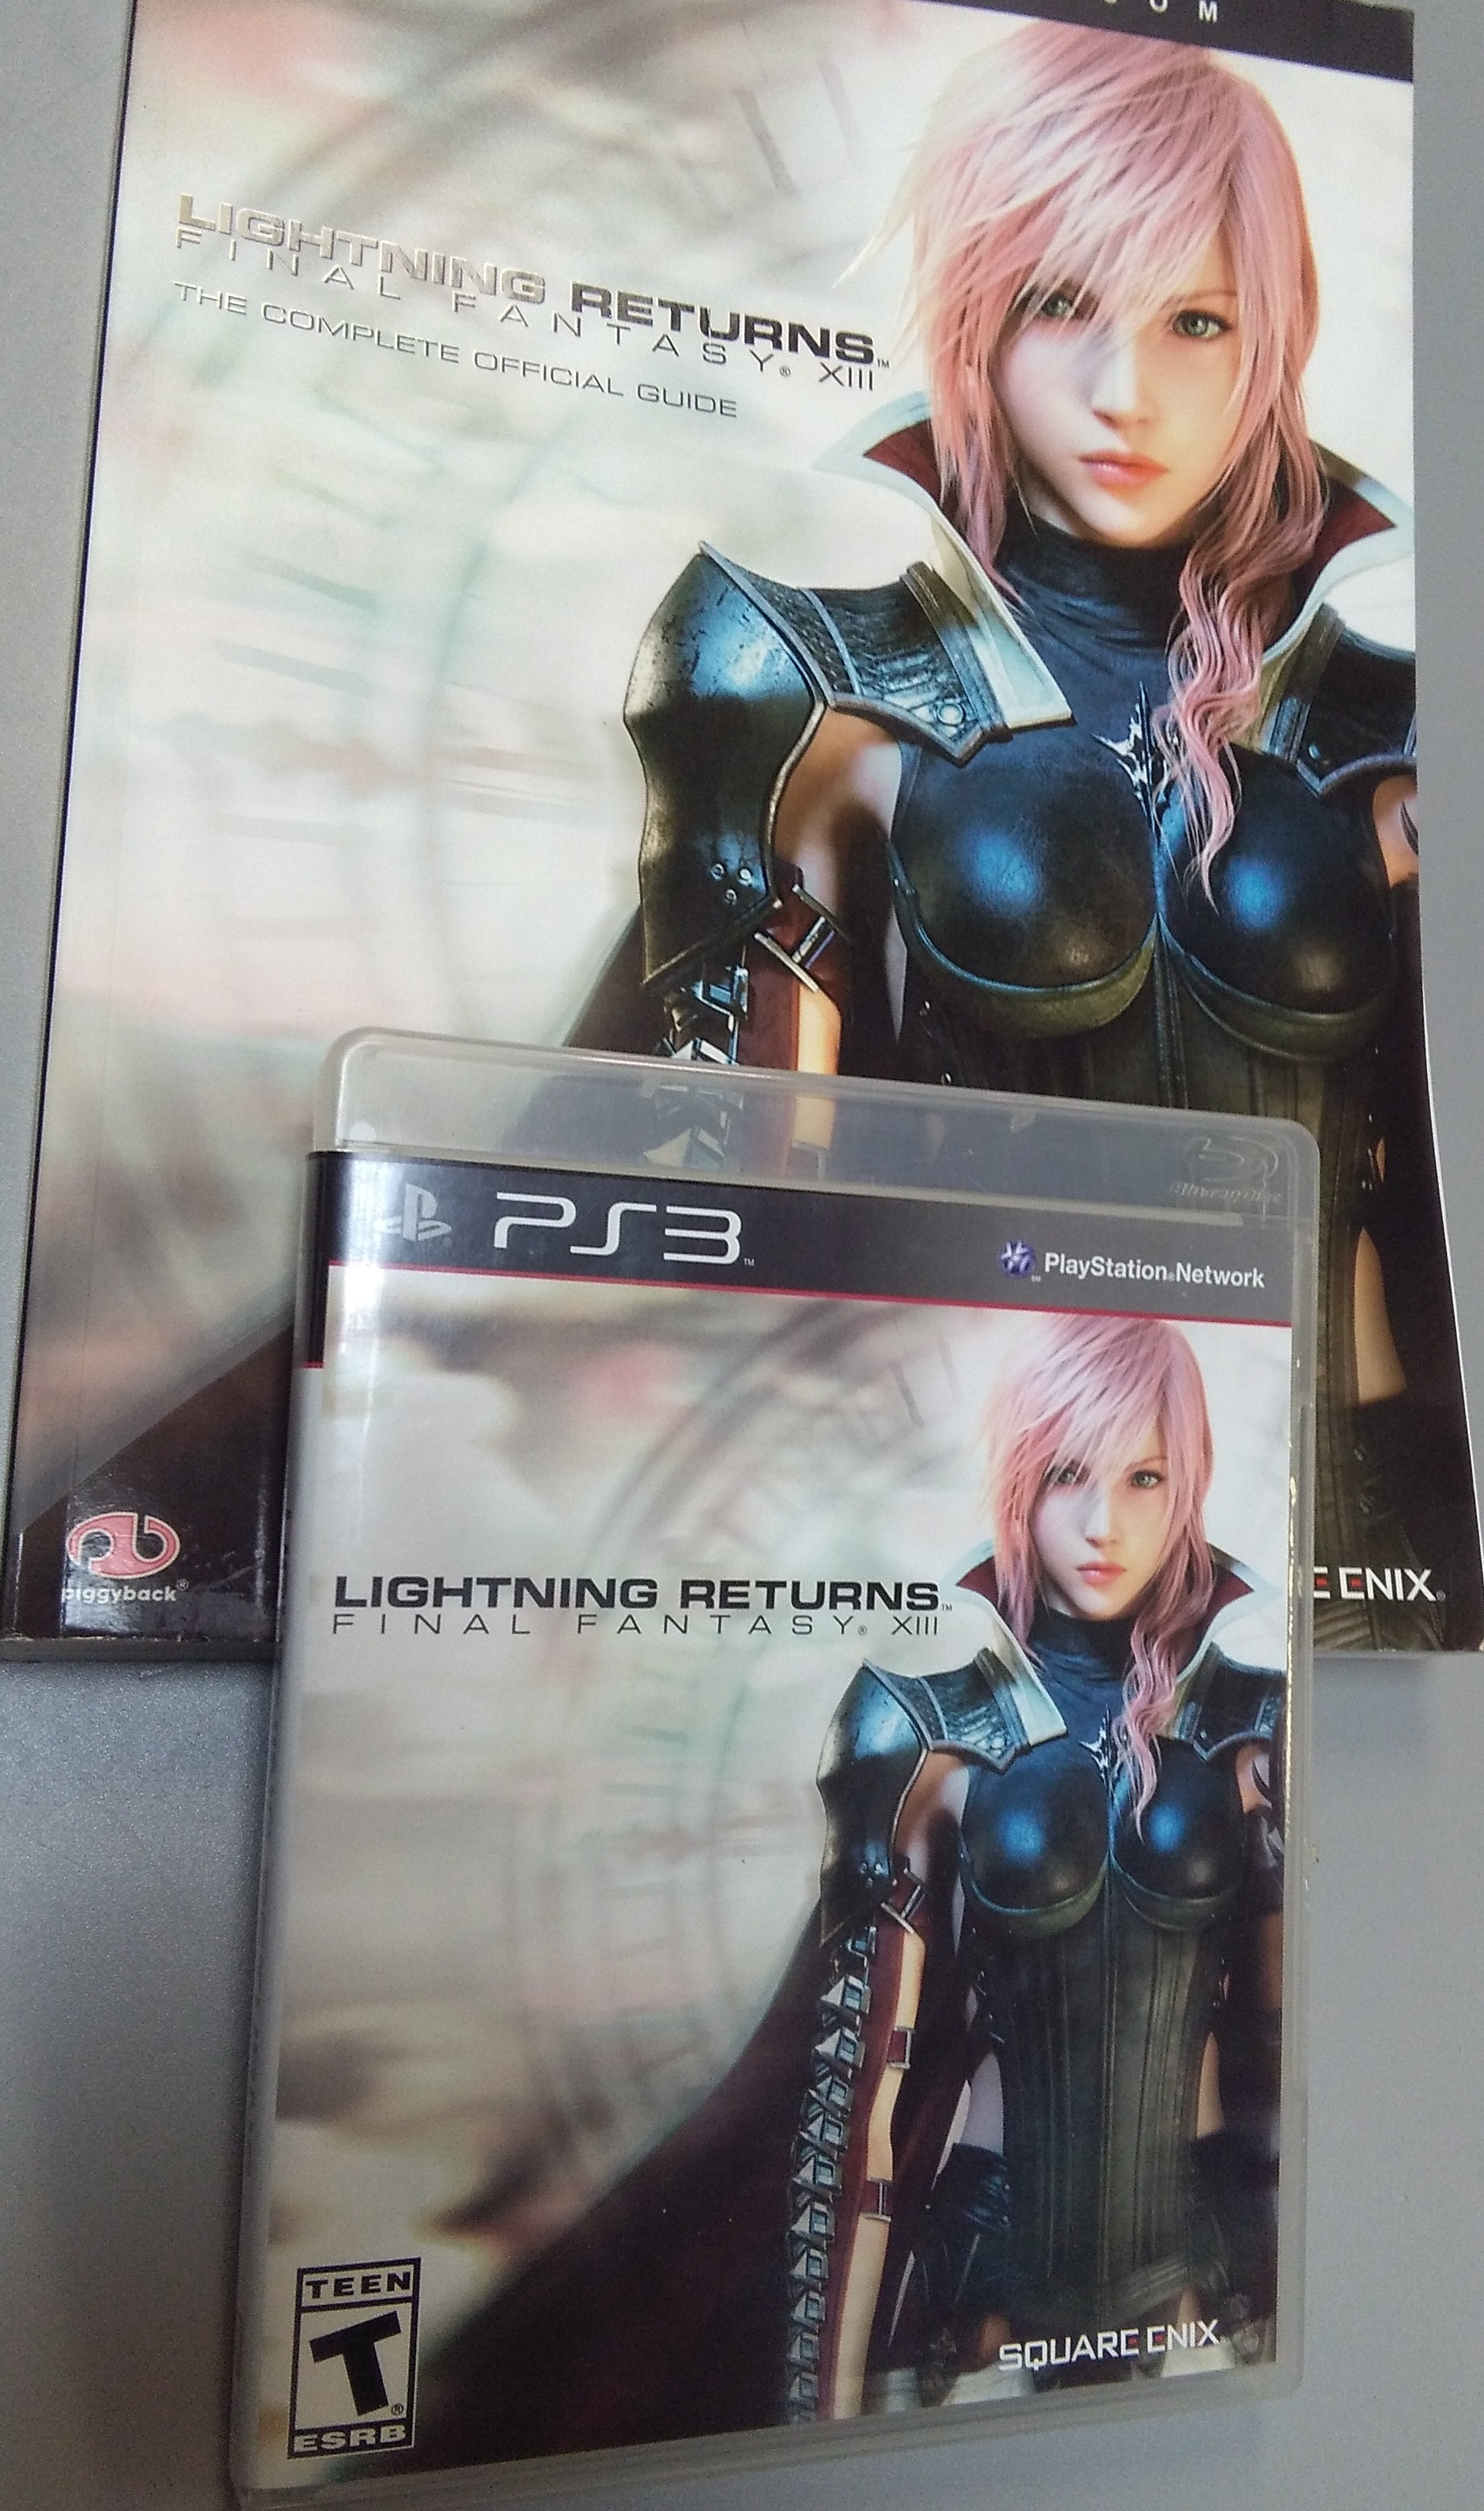 FINAL FANTASY XIII LIGHTNING RETURNS - PS3 GAME